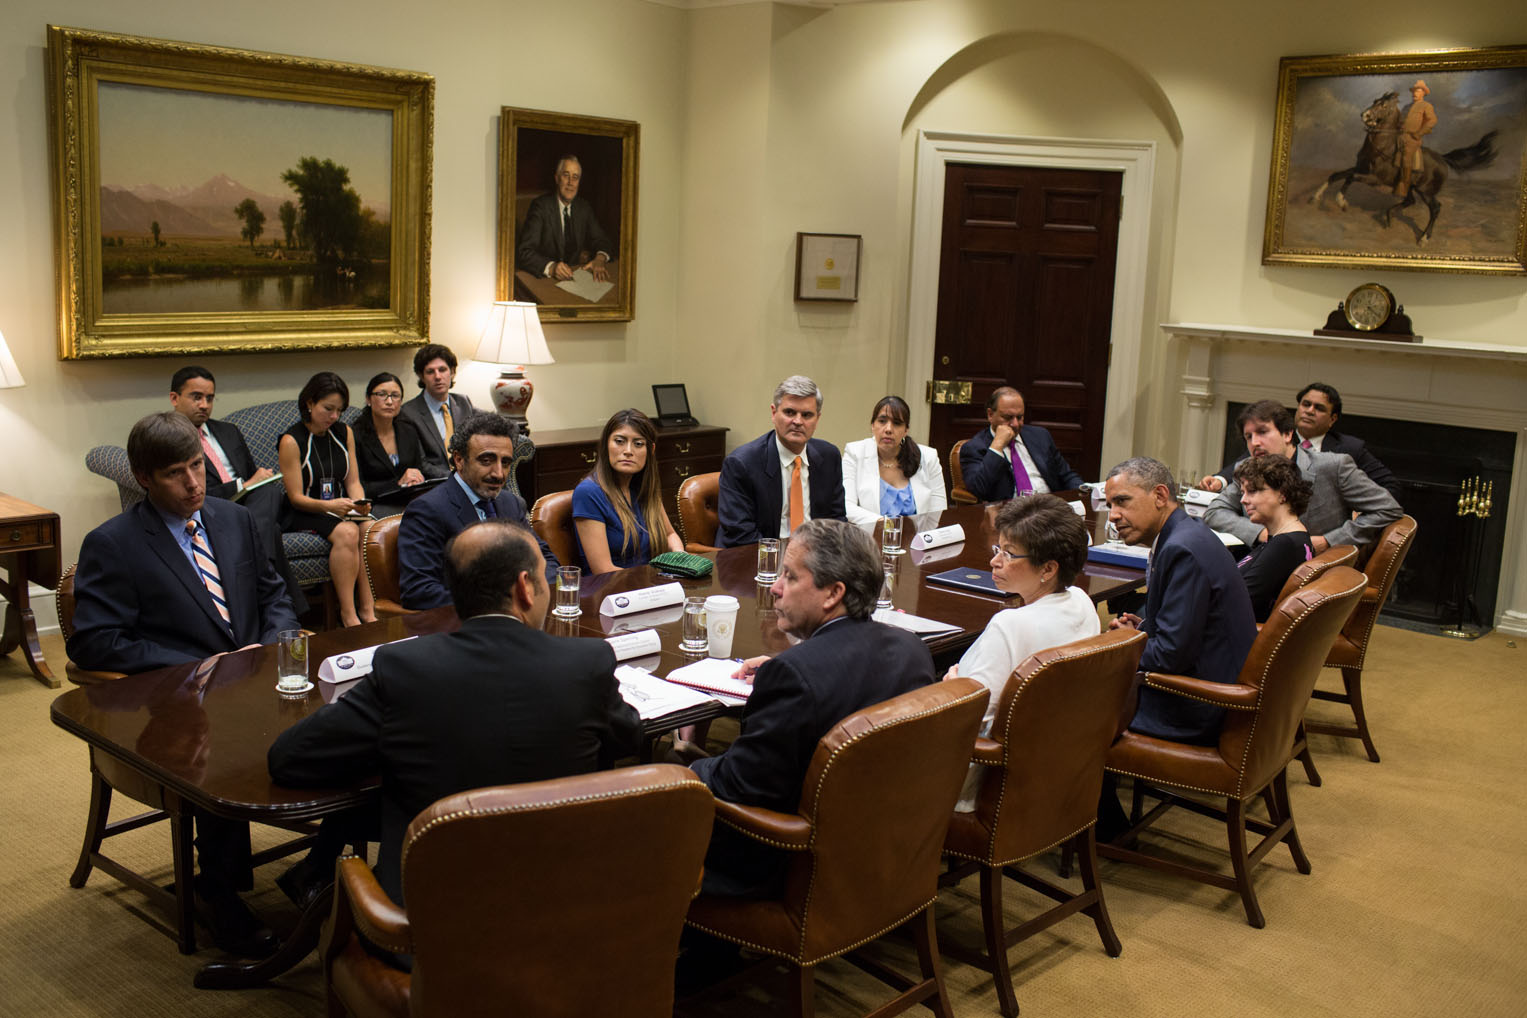 President Barack Obama meets with business owners and entrepreneurs to discuss immigration reform